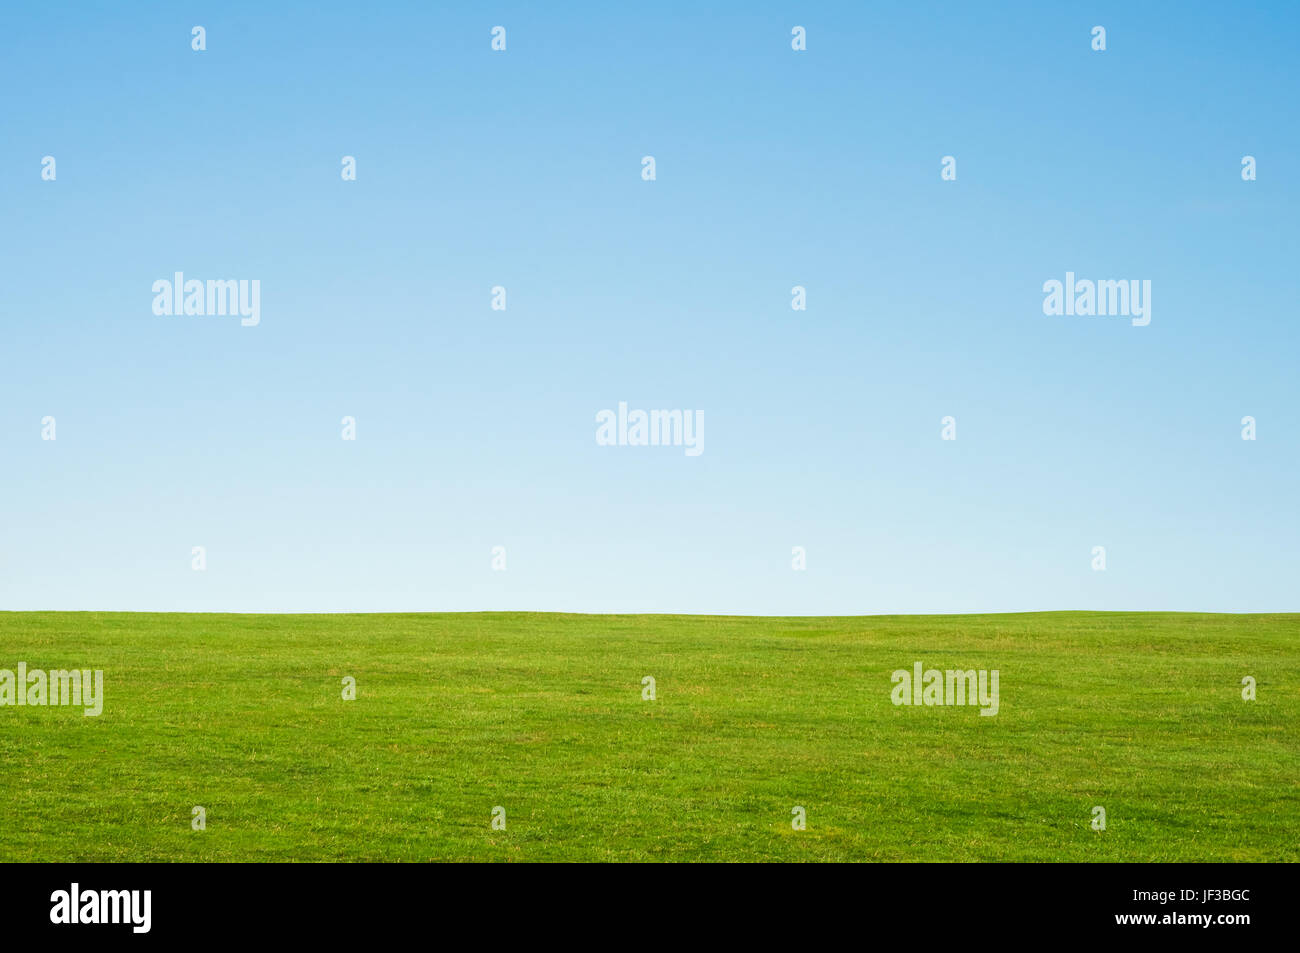 Green grass and blue sky landscape background, providing copy space in the sky.  Horizontal orientation. - Stock Image